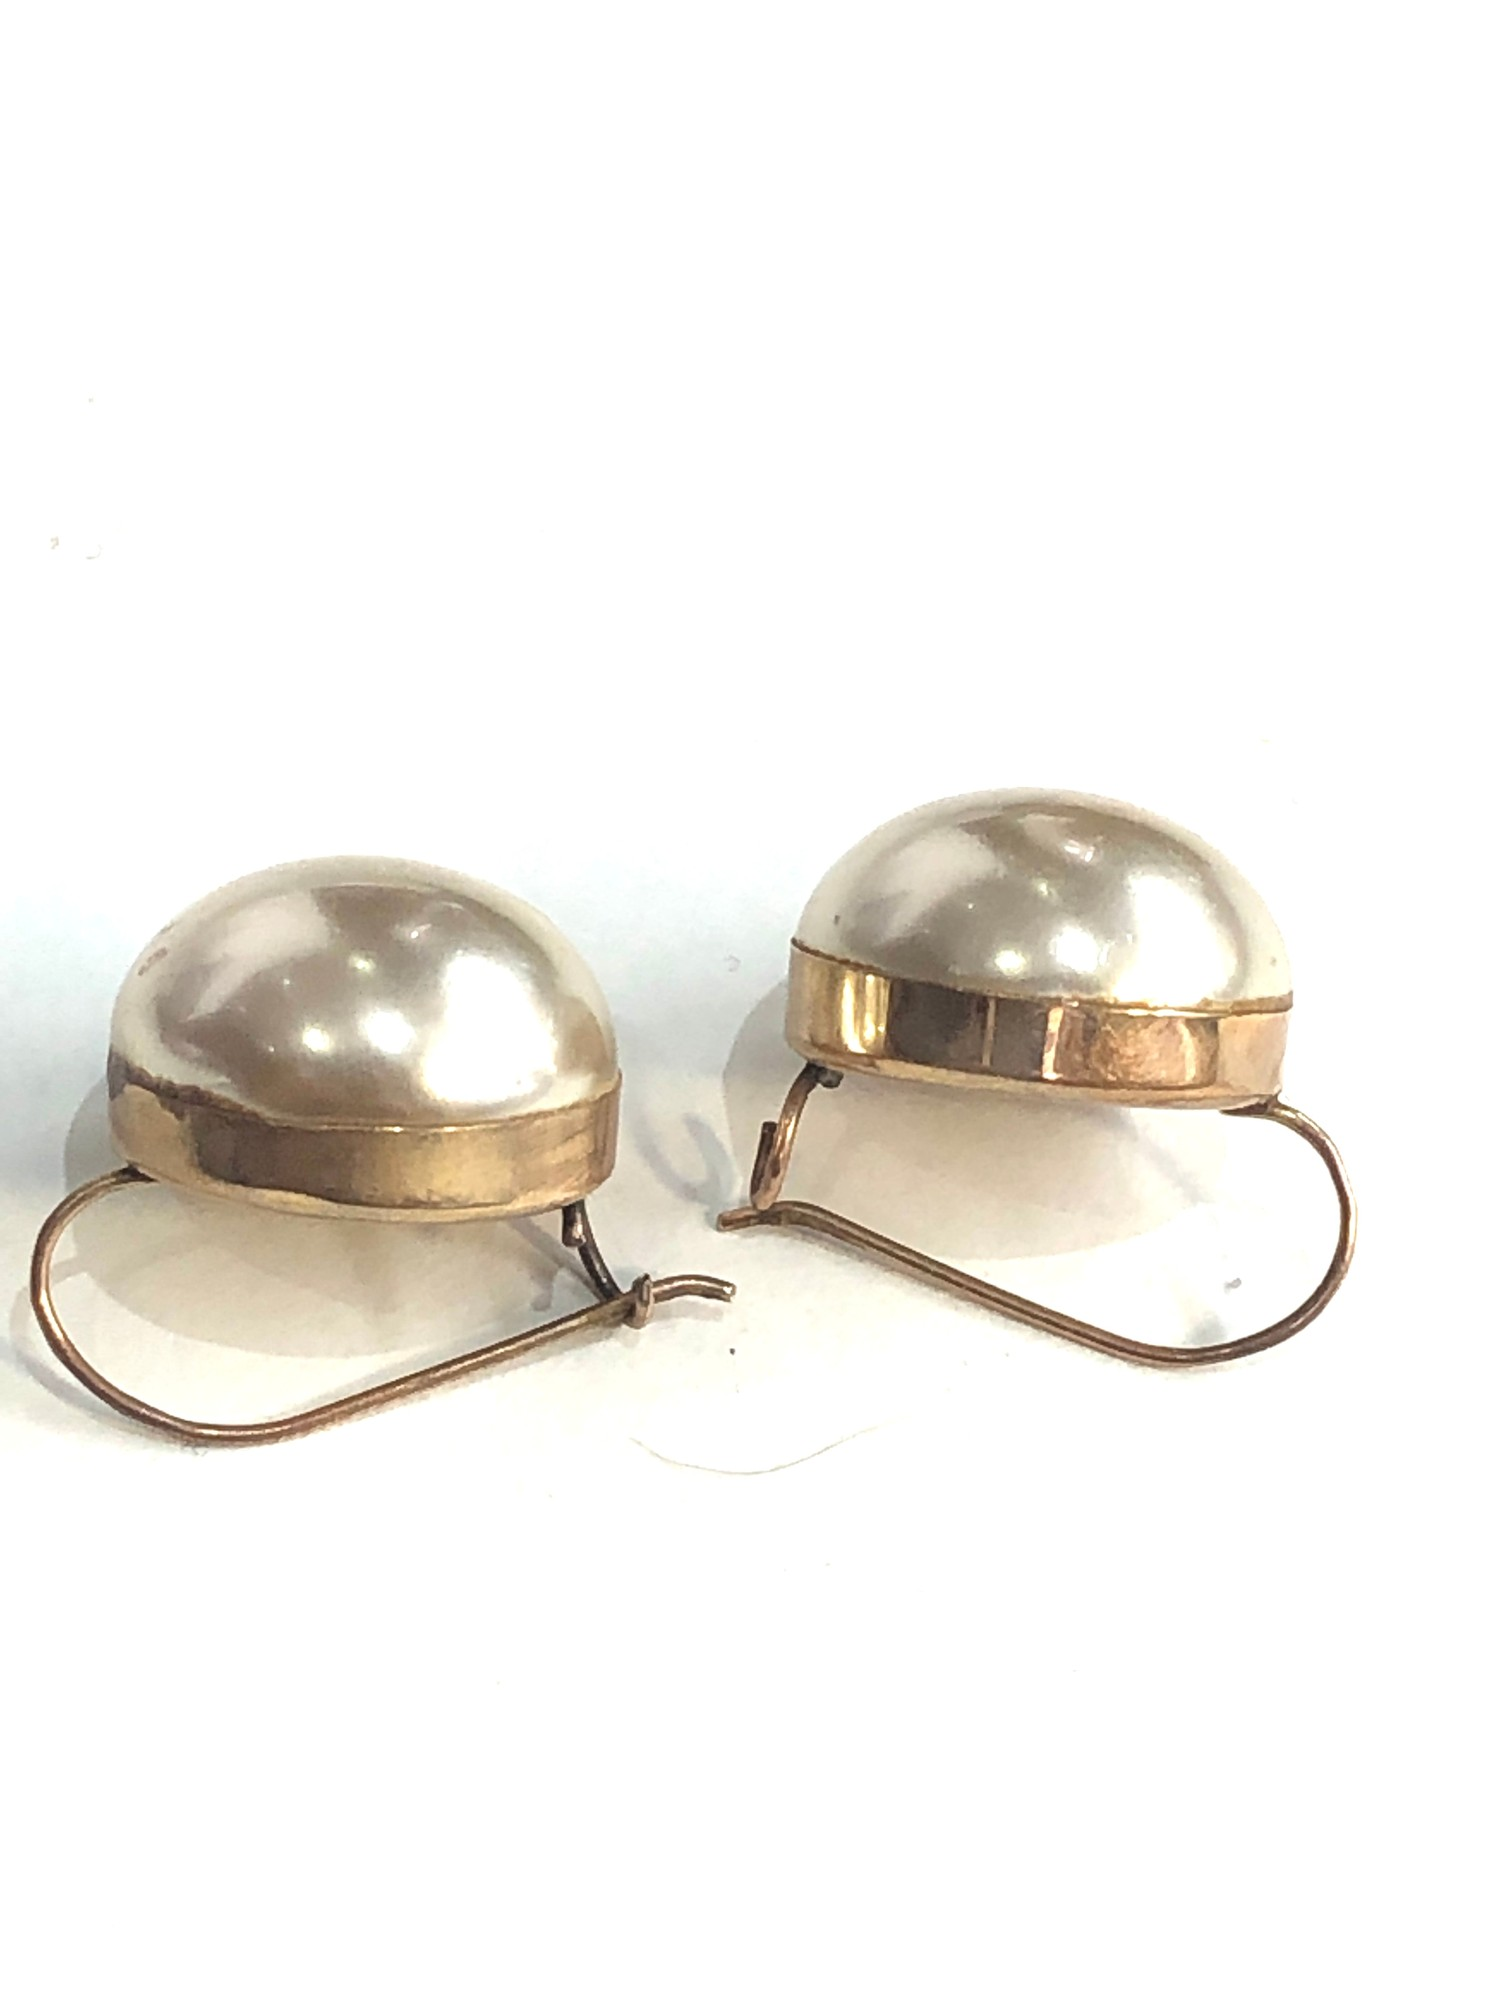 9ct gold large pearl set hook earrings weight 6.3g - Image 2 of 3